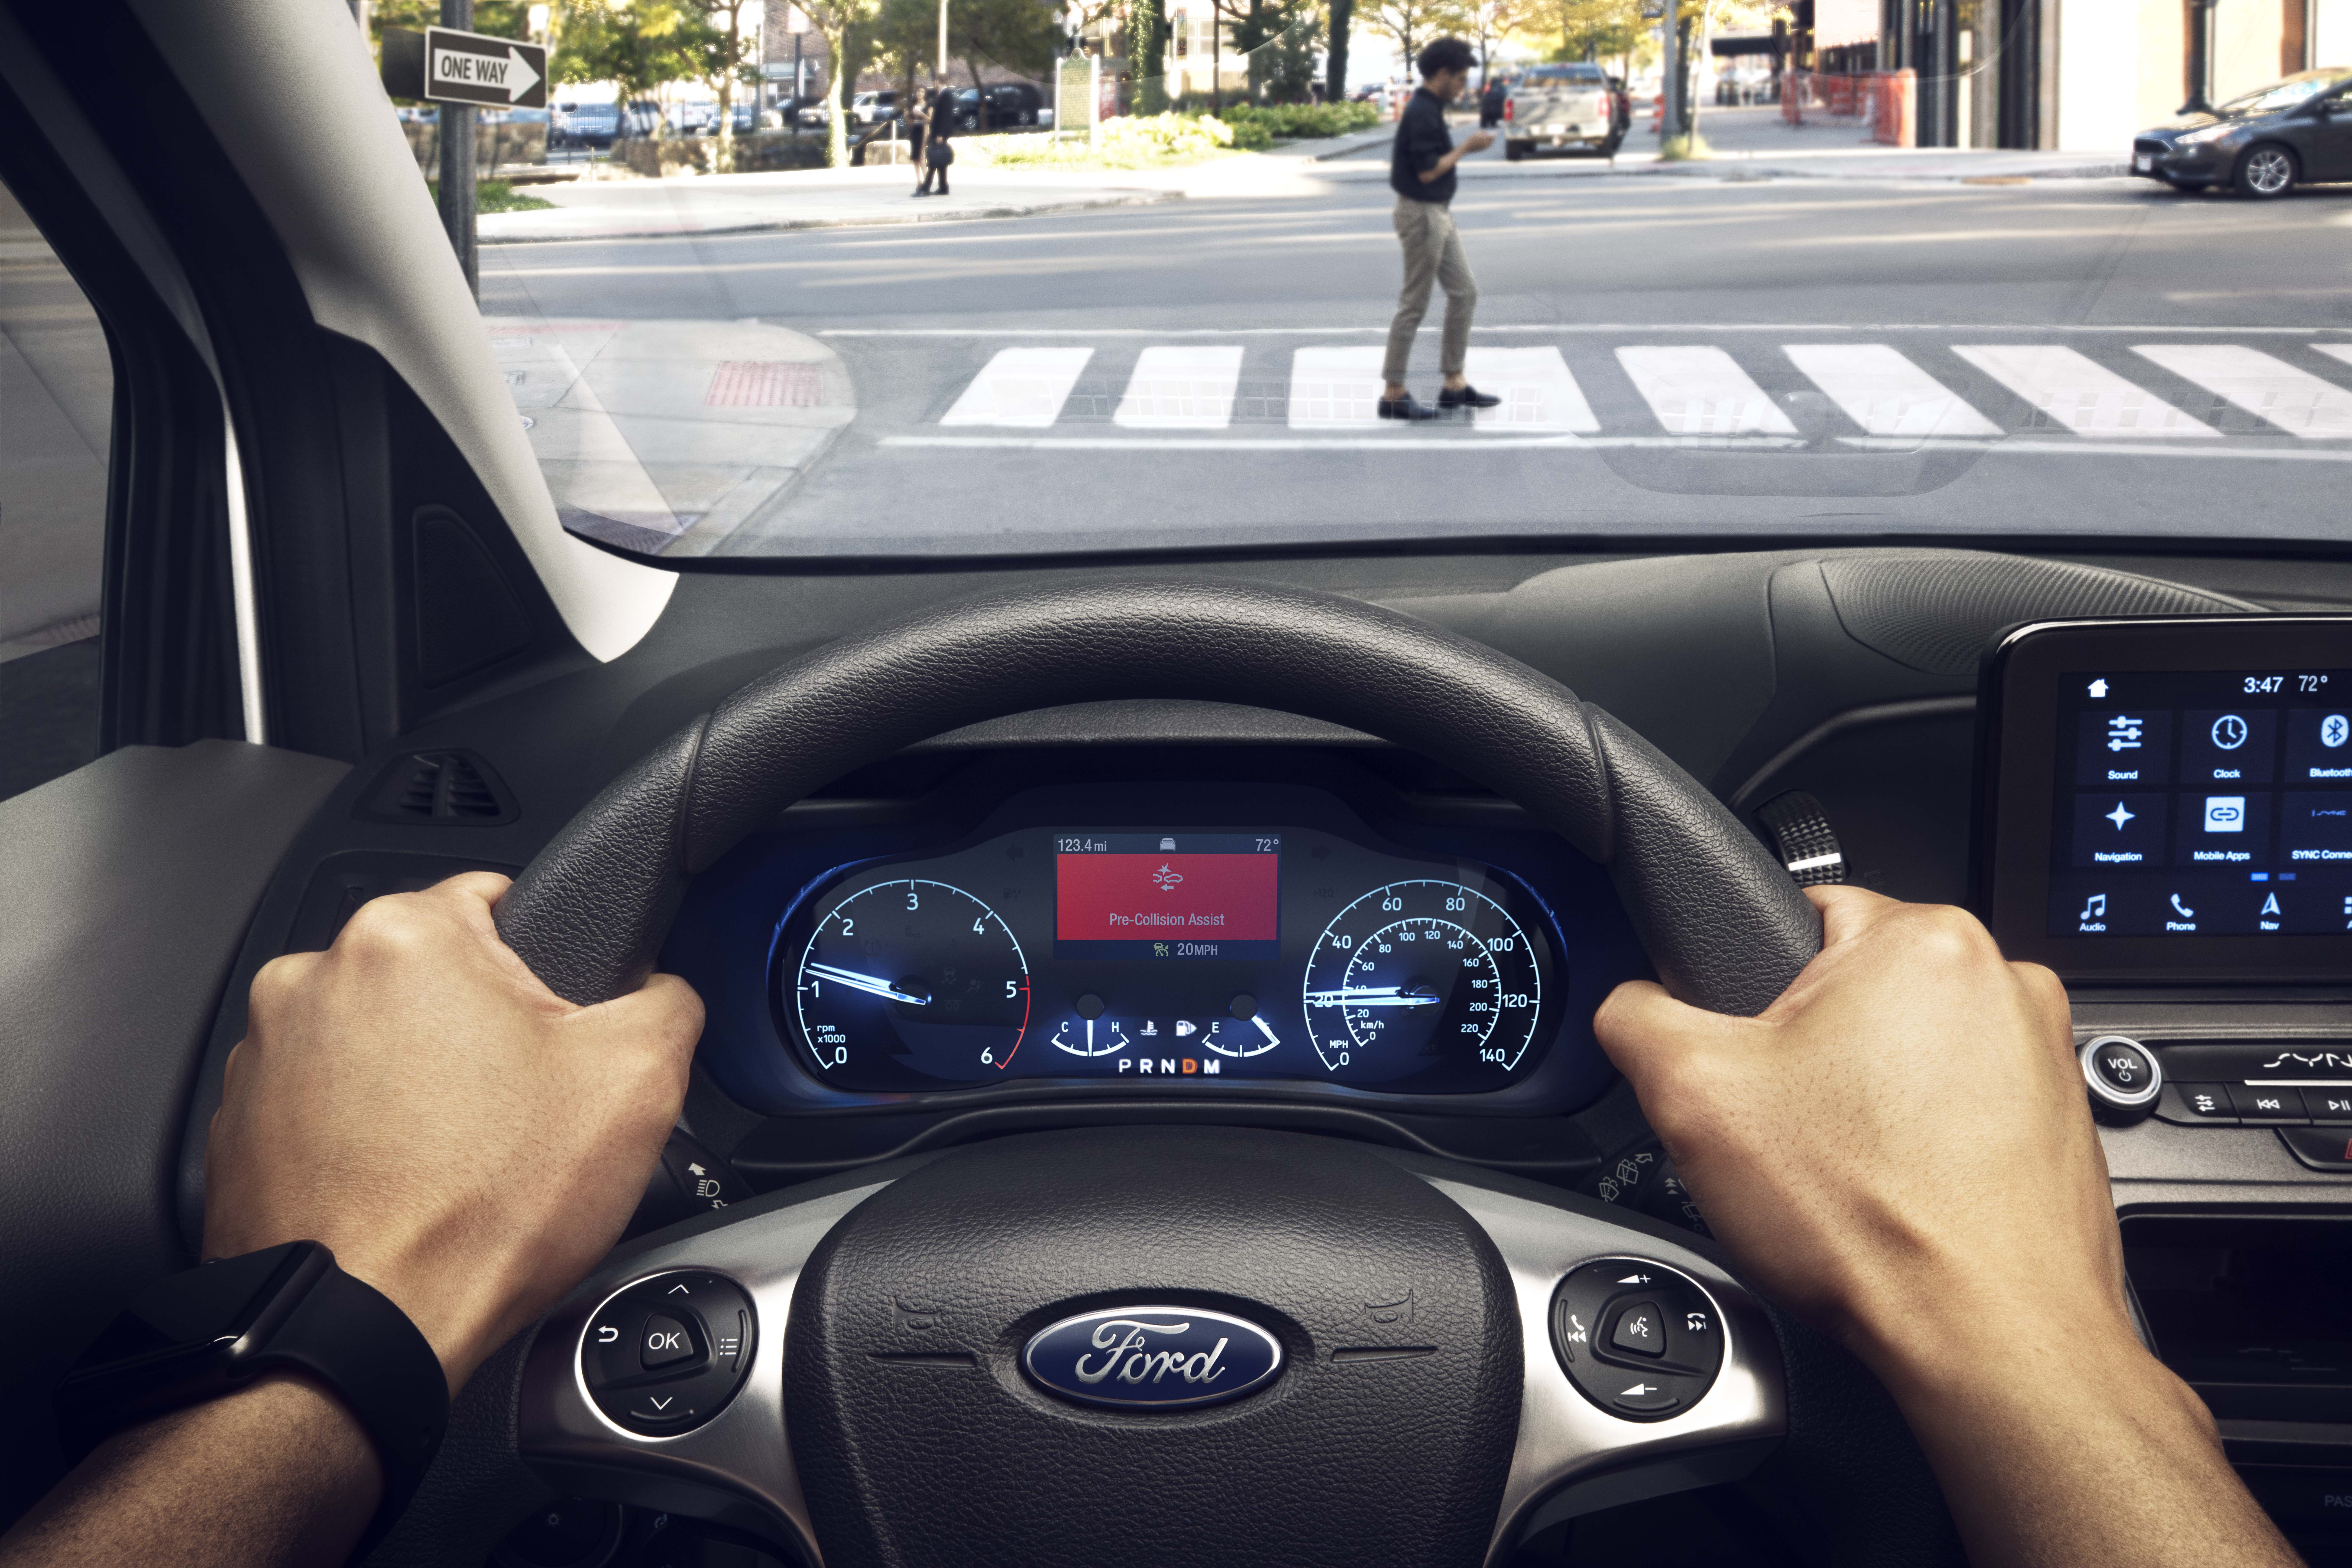 2019 Ford Transit Connect Pre-collision assist